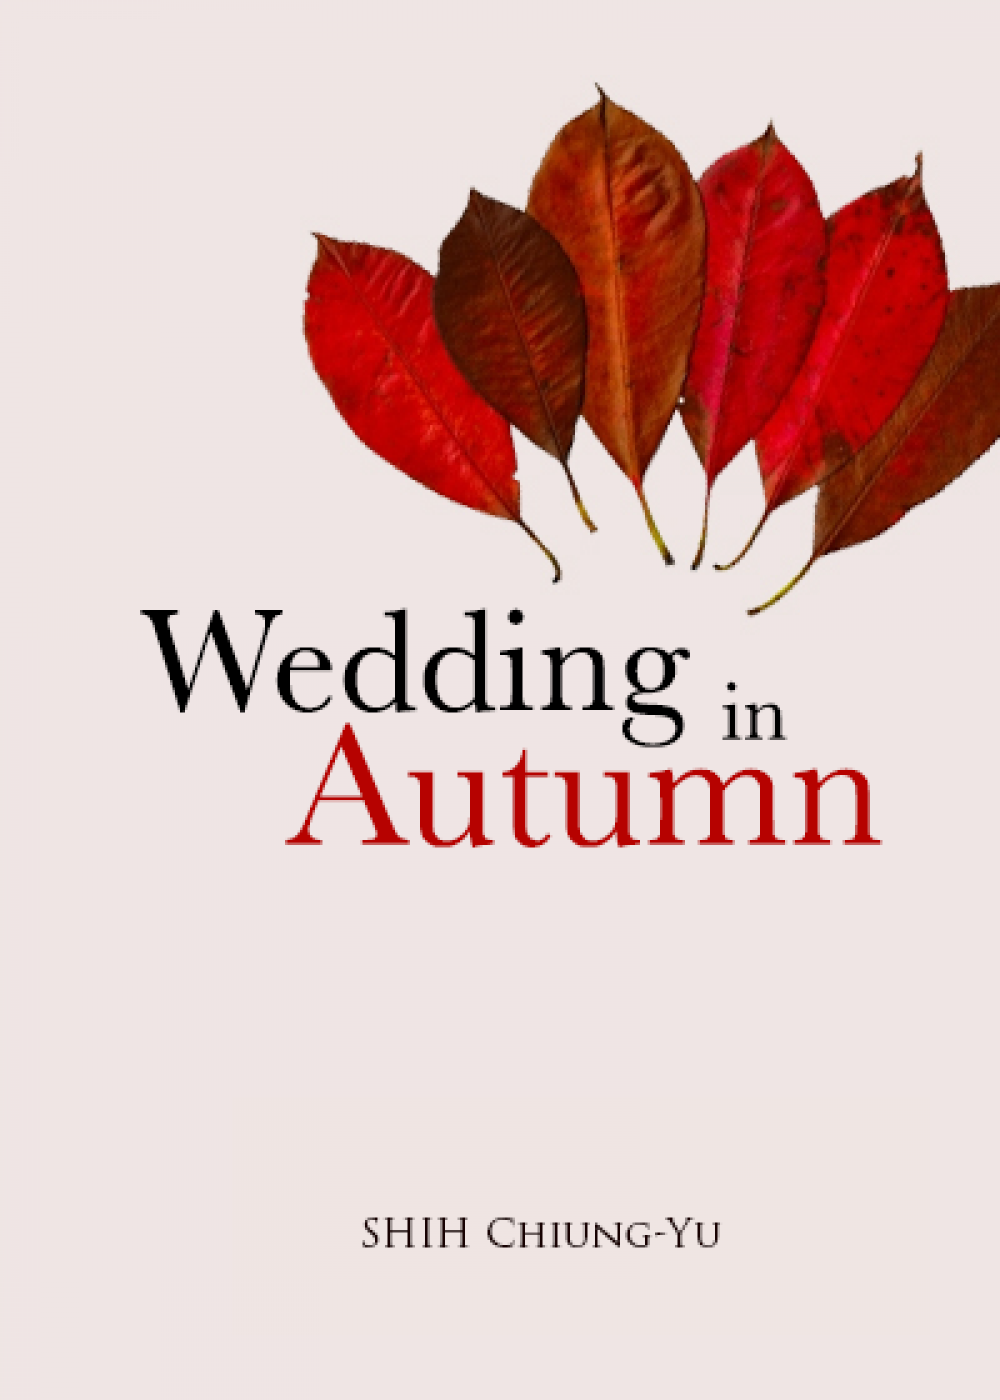 autumnwedding